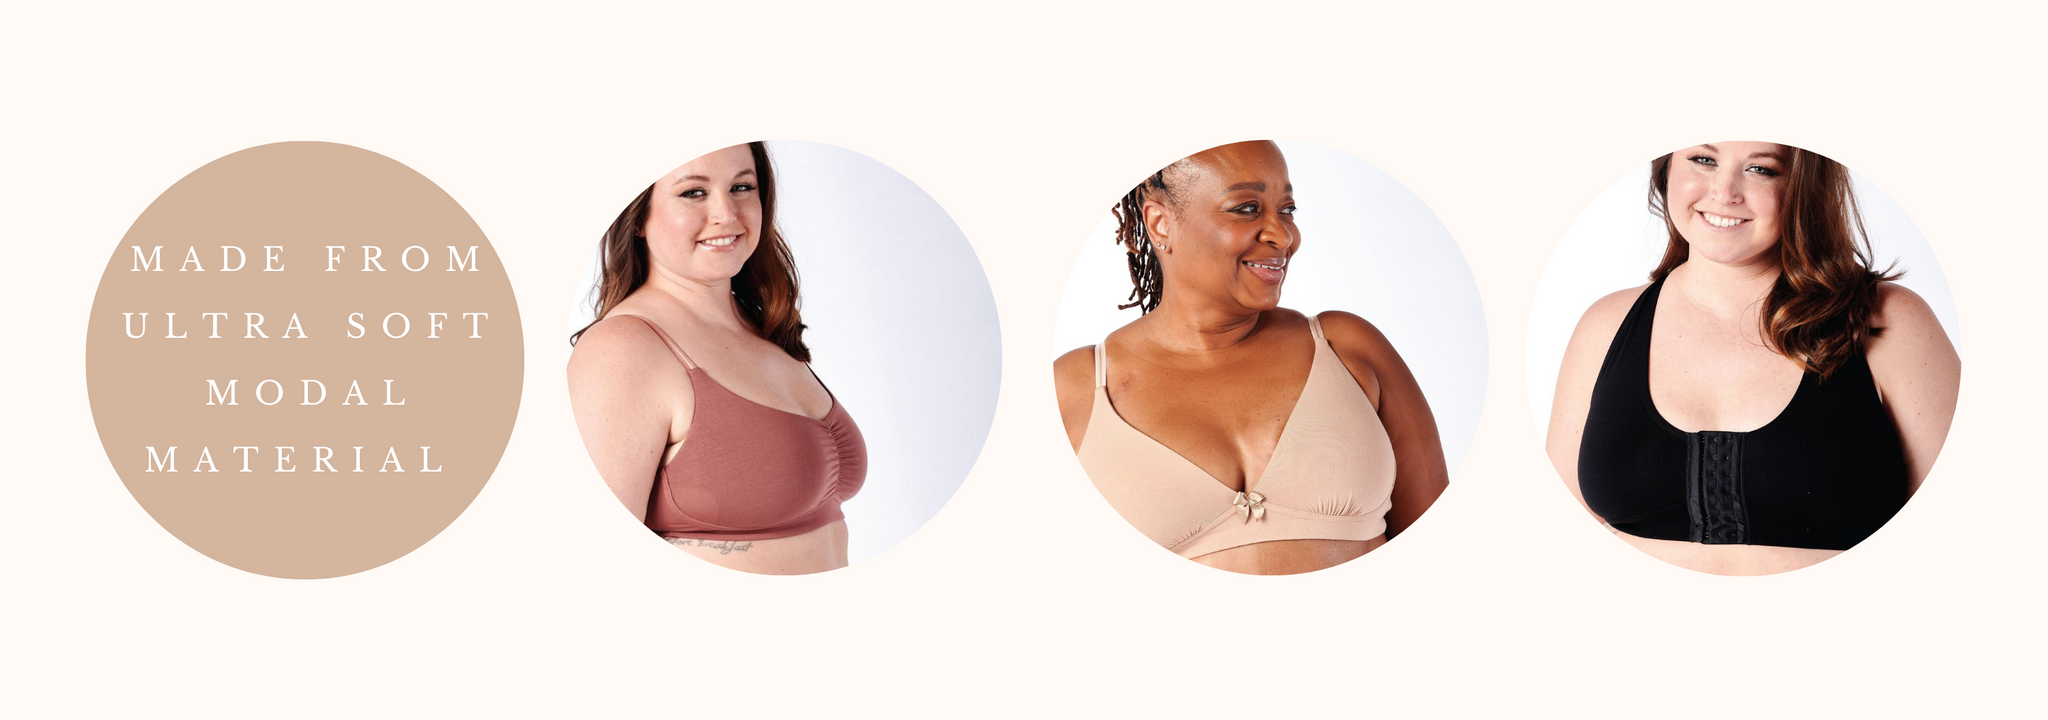 """""""made from ultra soft modal material"""" and three images of women in AnaOno bras"""